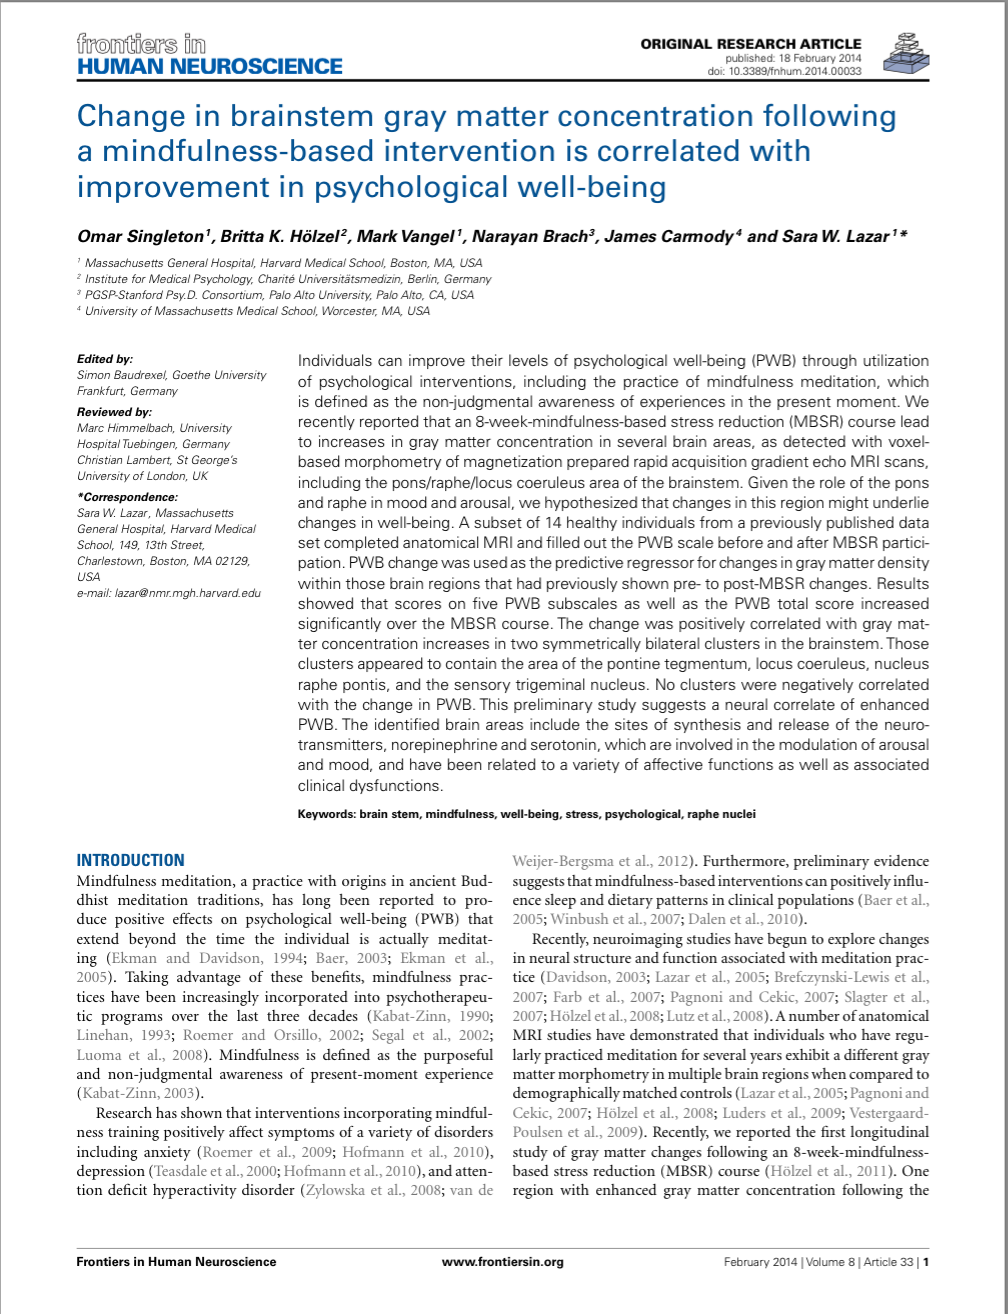 Change in brainstem gray matter concentration following a mindfulness-based intervention is correlated with improvement in psychological well-being